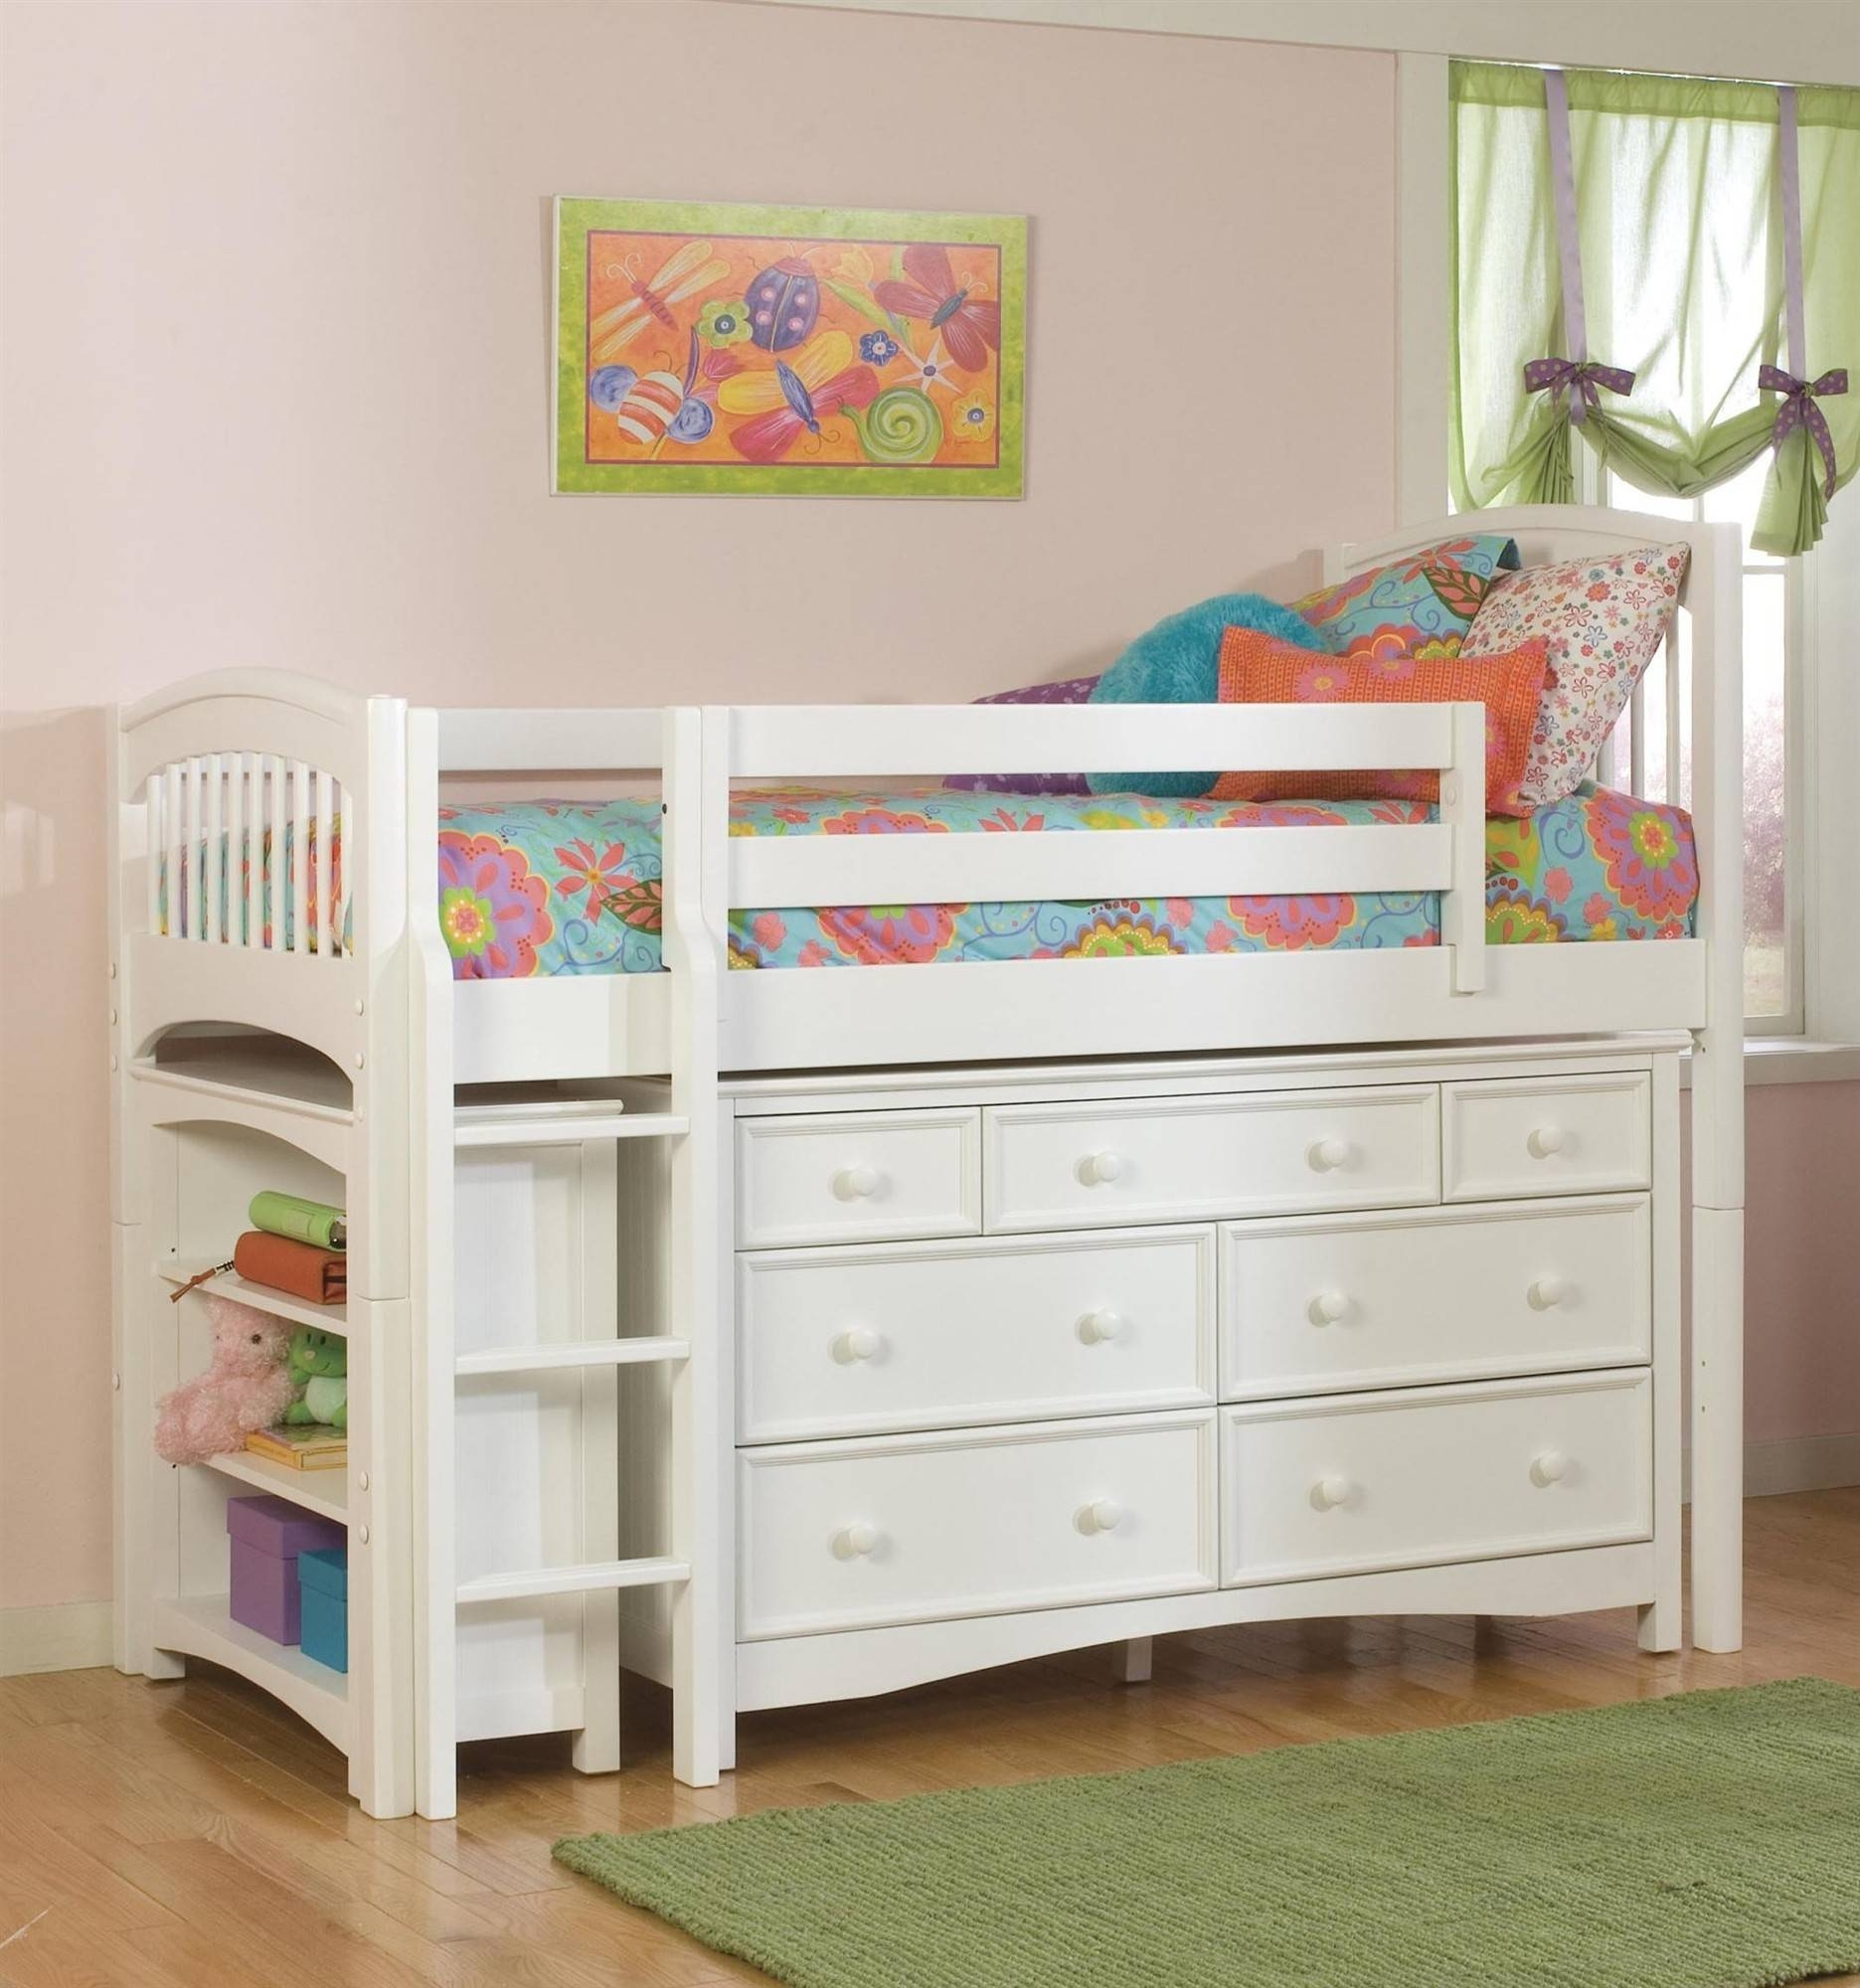 Children Beds - Hypnofitmaui for Childrens Bed With Wardrobes Underneath (Image 3 of 15)